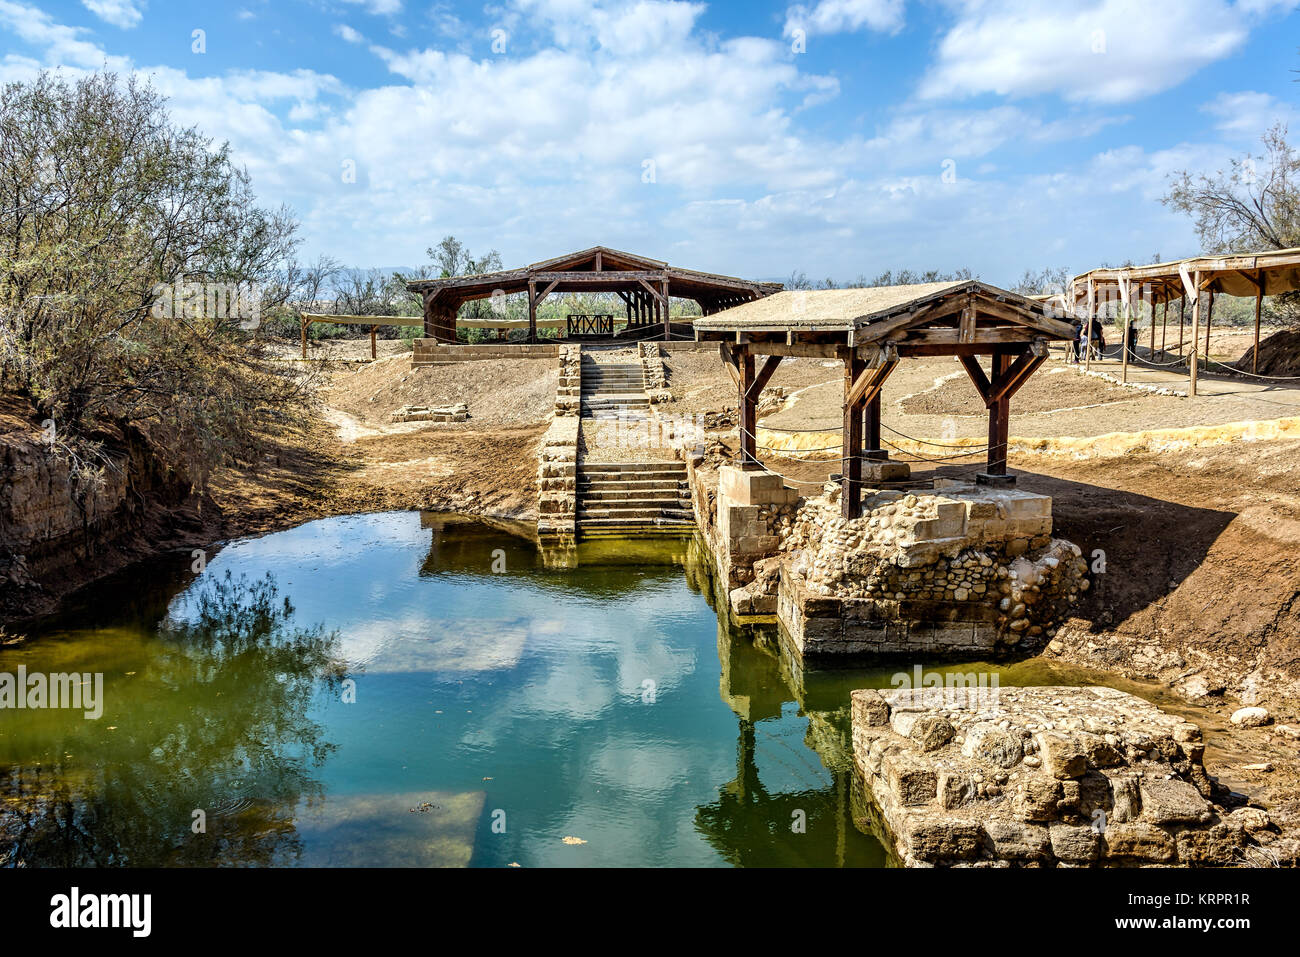 Authentic site of Jesus' baptism under blue skies with fluffy clouds - Stock Image